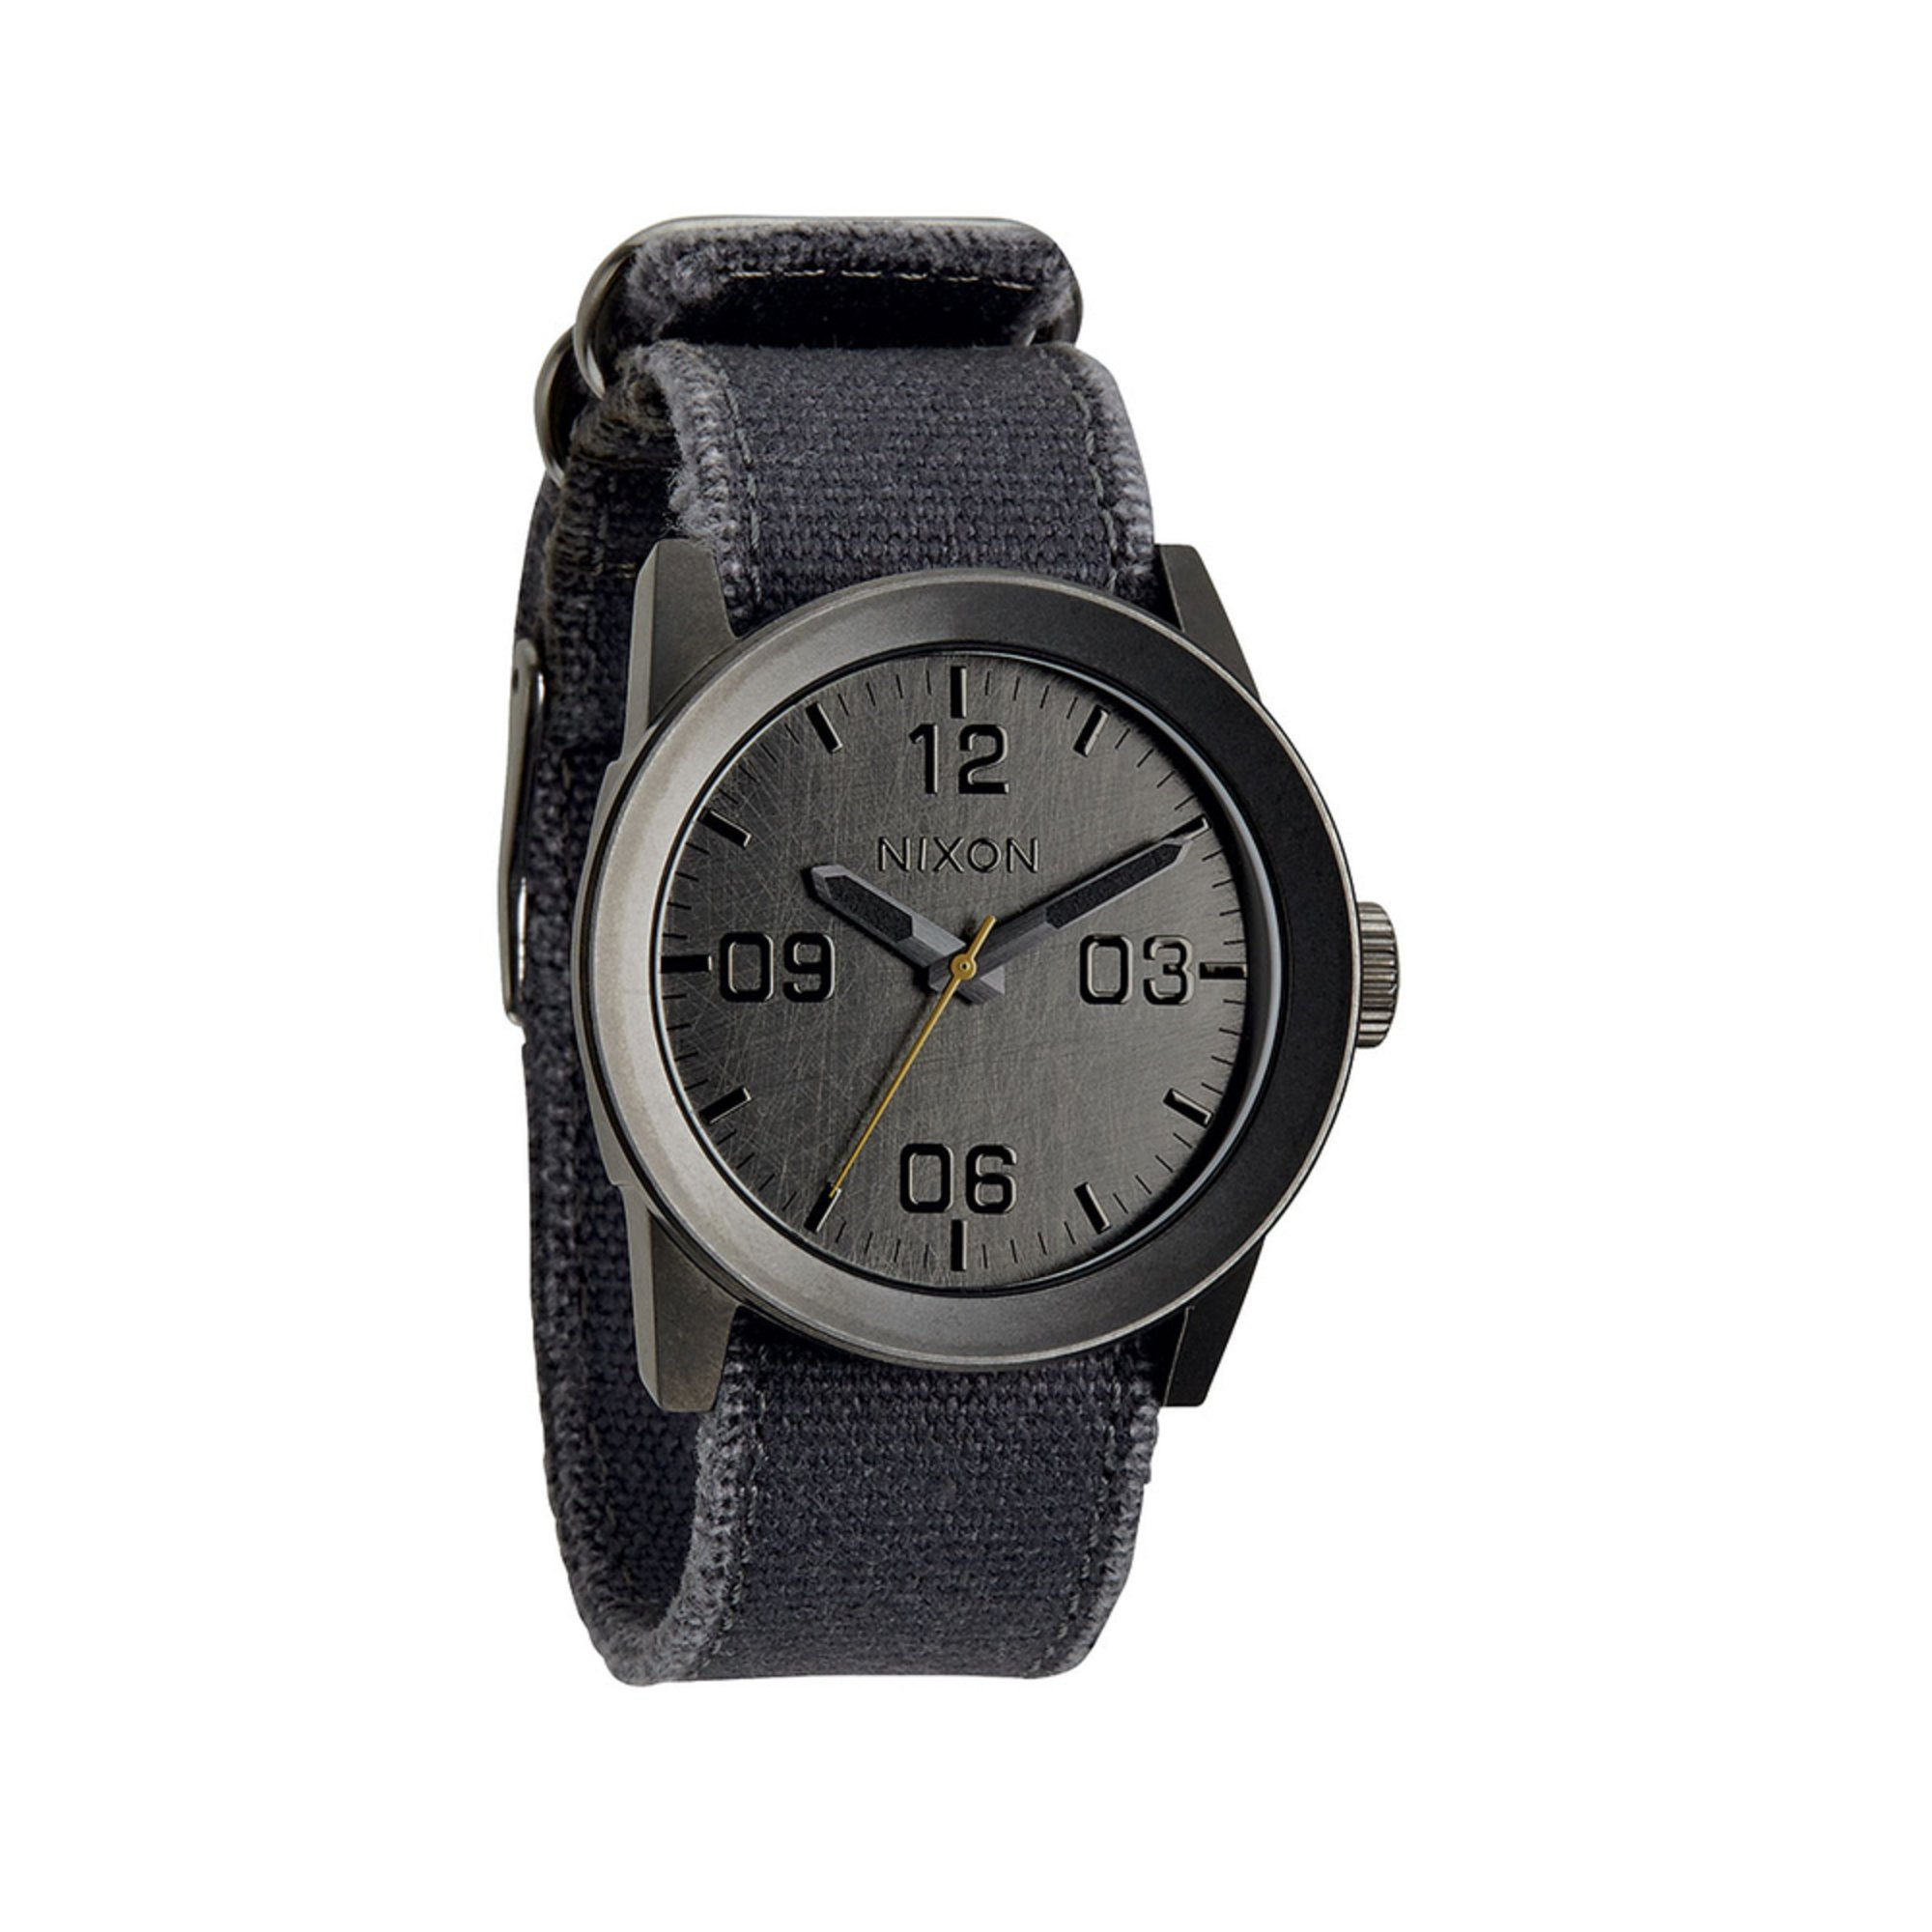 Rose gold mens watch nixon watches sale clearance for Watches clearance